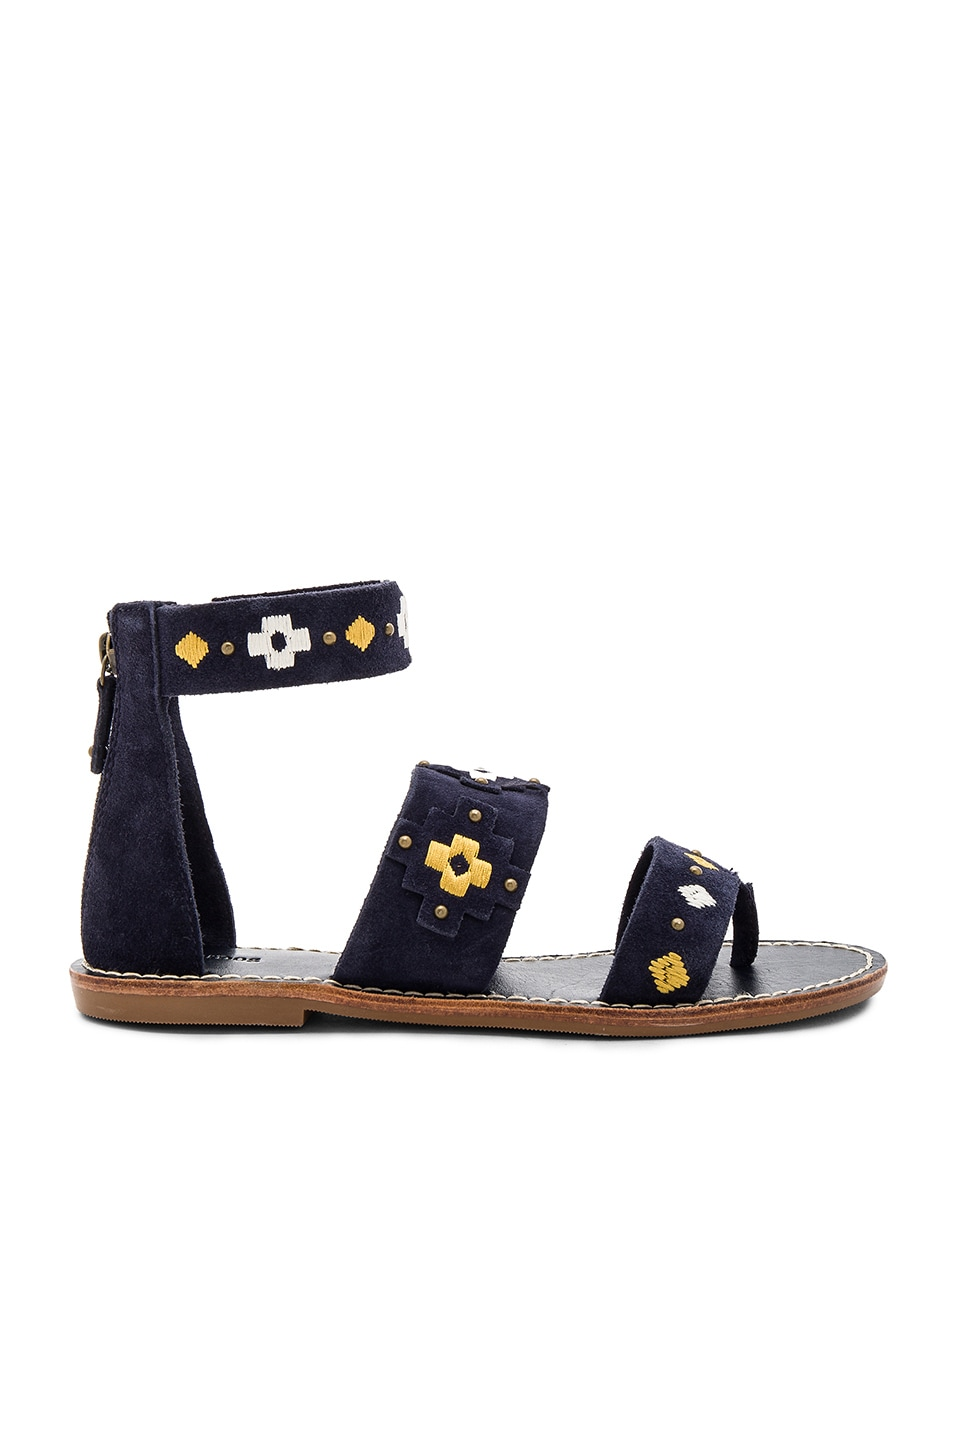 Embroidered Three Banded Sandal by Soludos